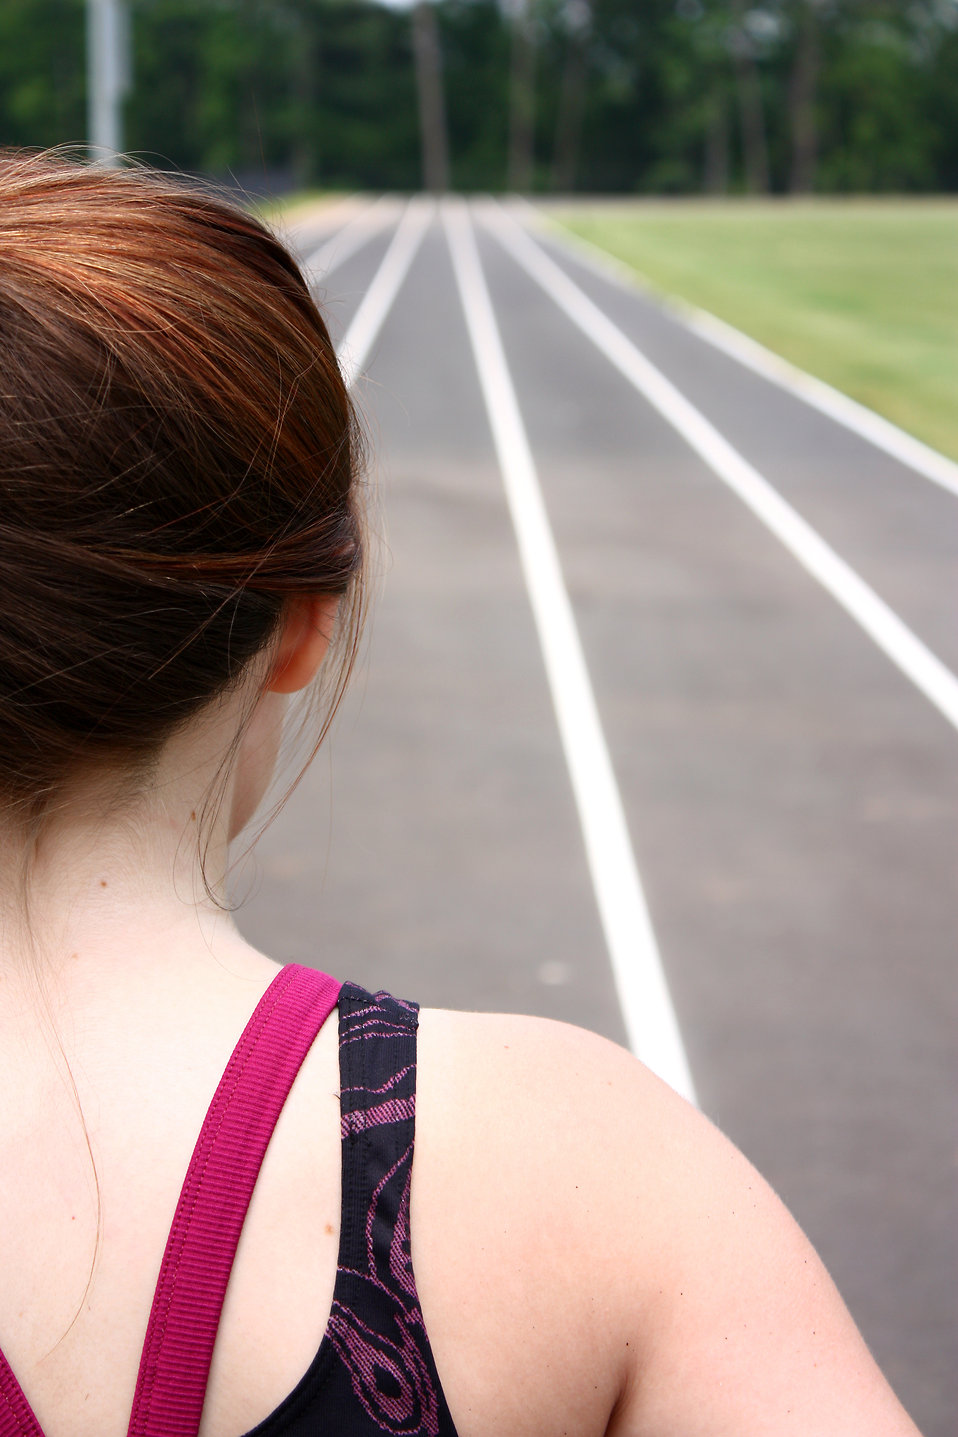 A cute young girl on a track field : Free Stock Photo